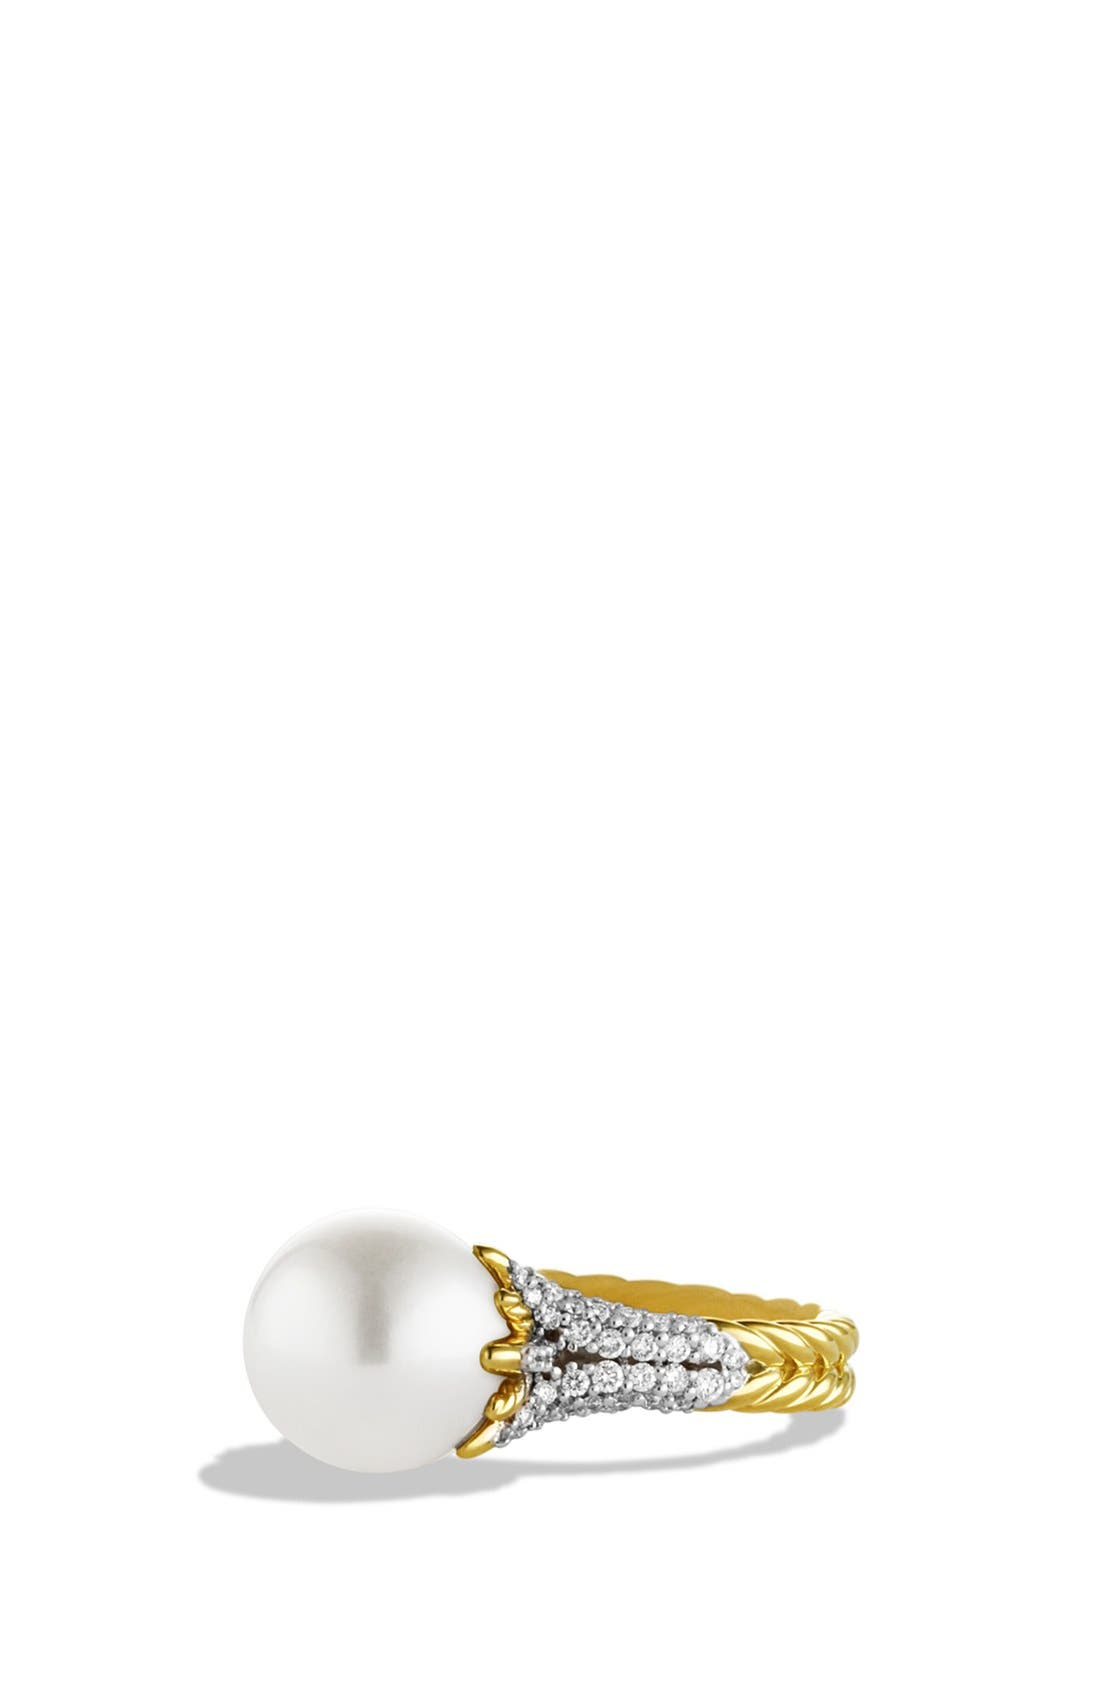 'Starburst' Pearl Ring with Diamonds in Gold,                             Main thumbnail 1, color,                             Pearl